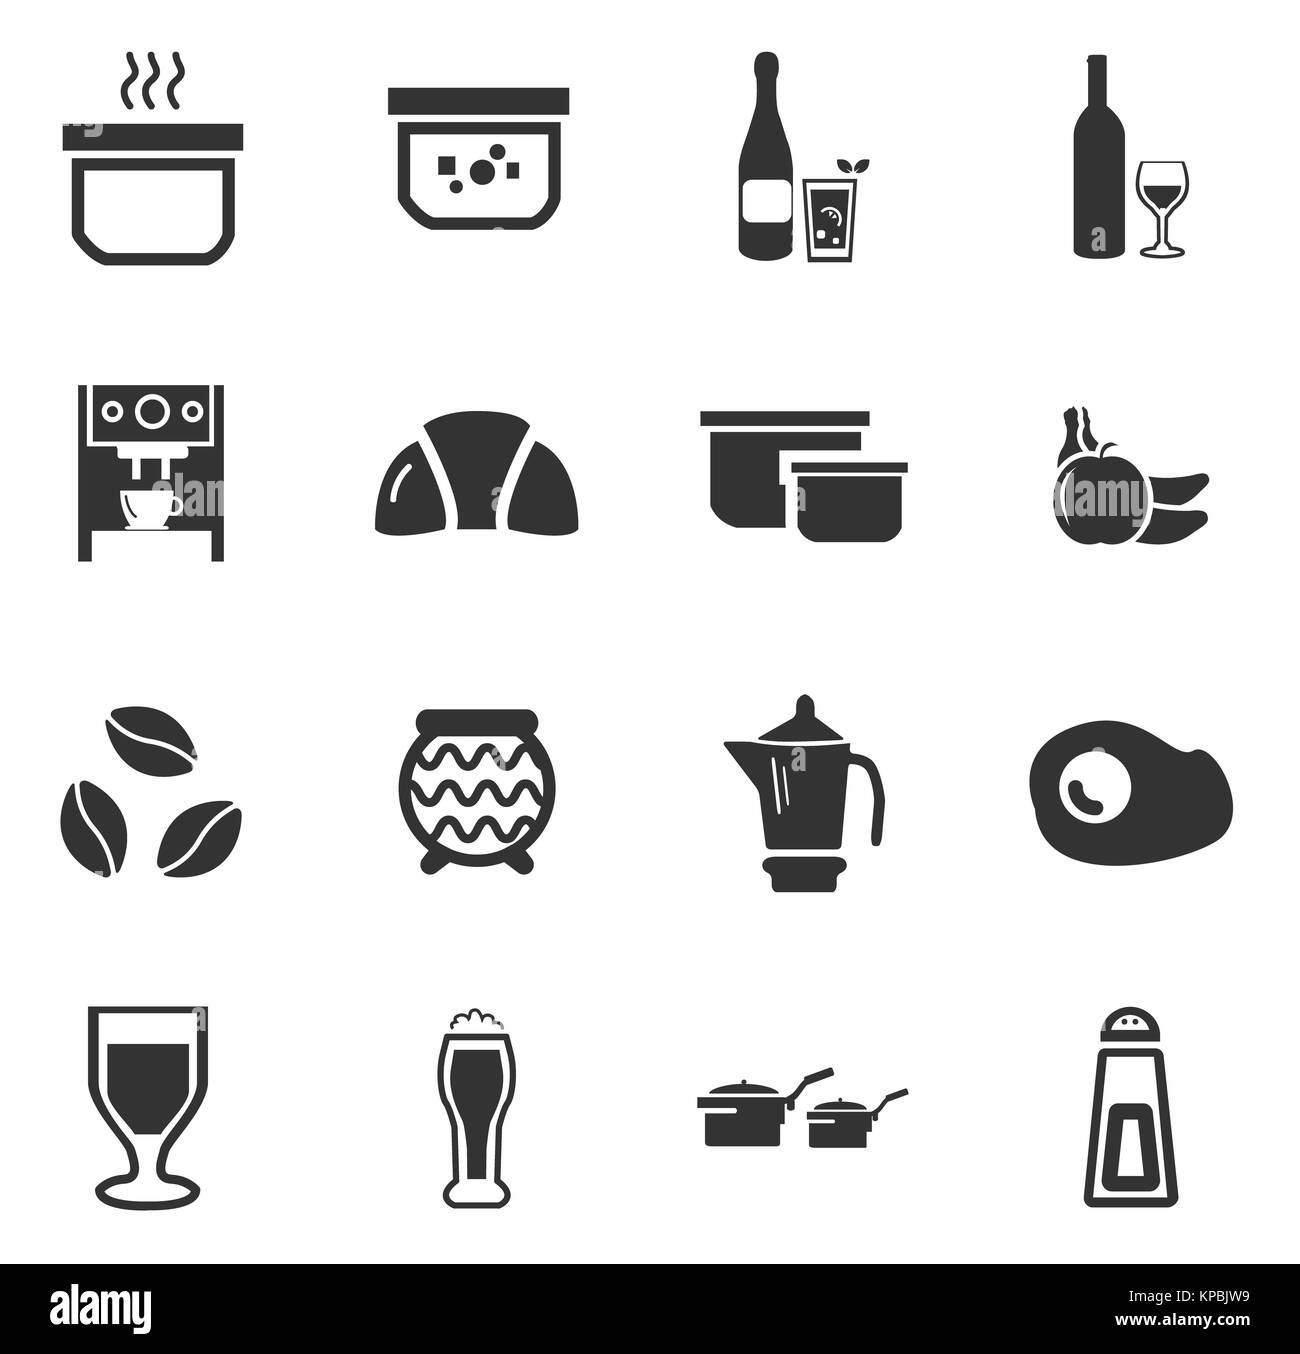 Food and kitchen icons set - Stock Image